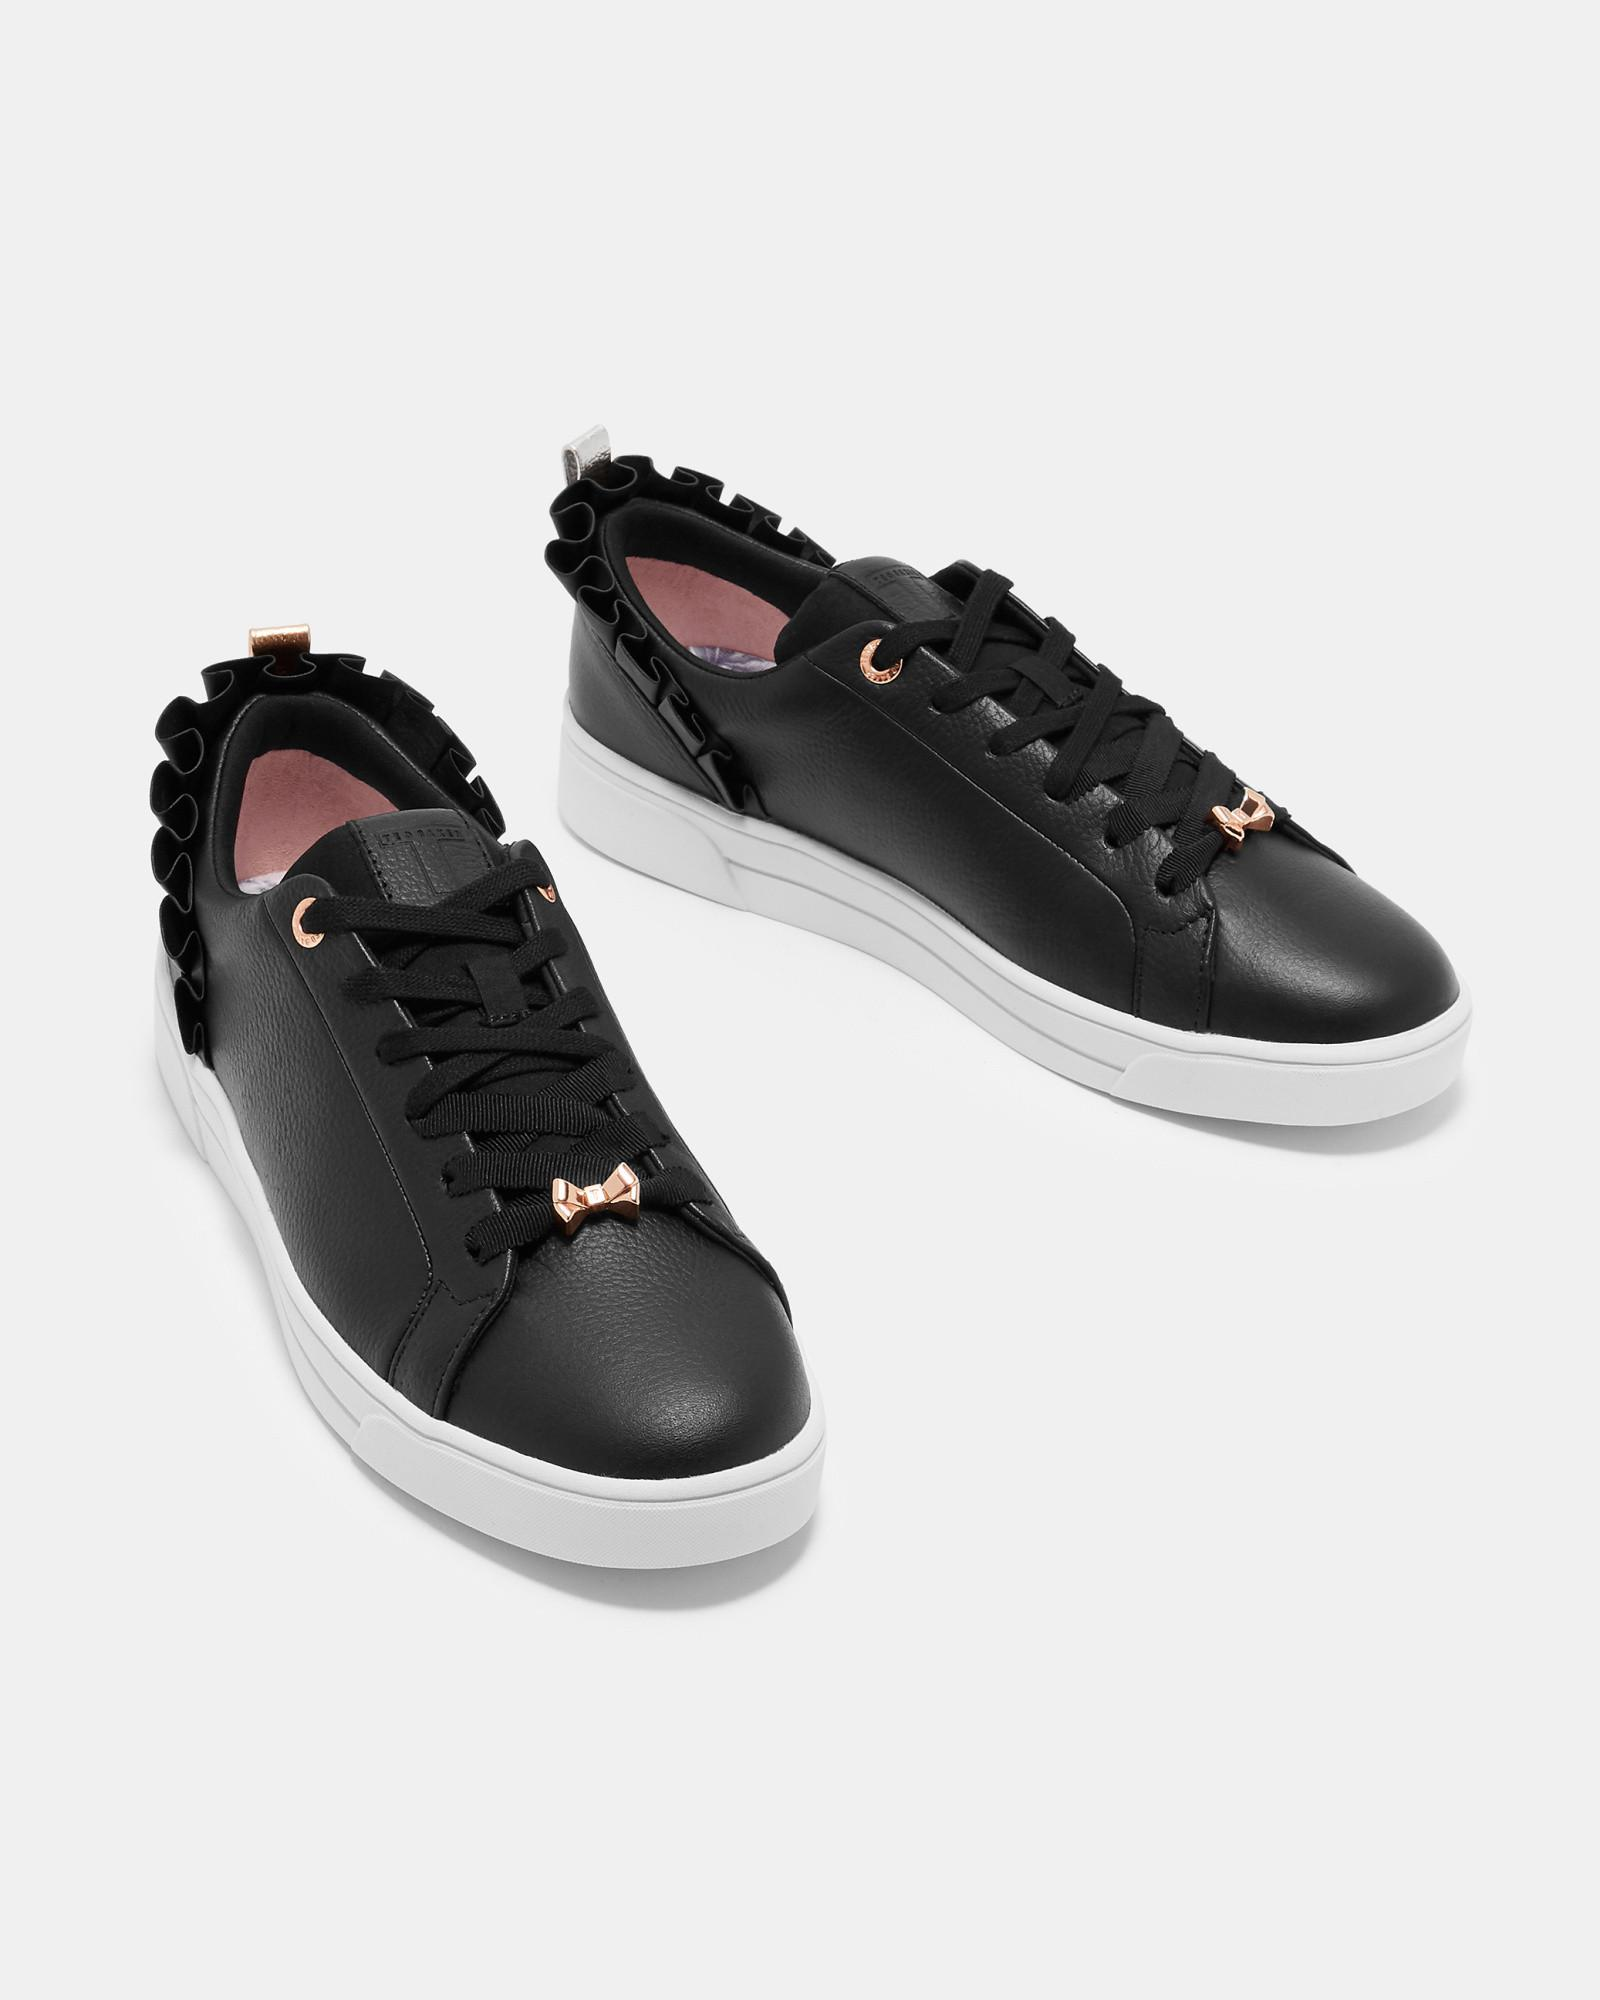 promo code dce70 bc591 ted-baker-Black-Ruffle-Detail-Trainers.jpeg